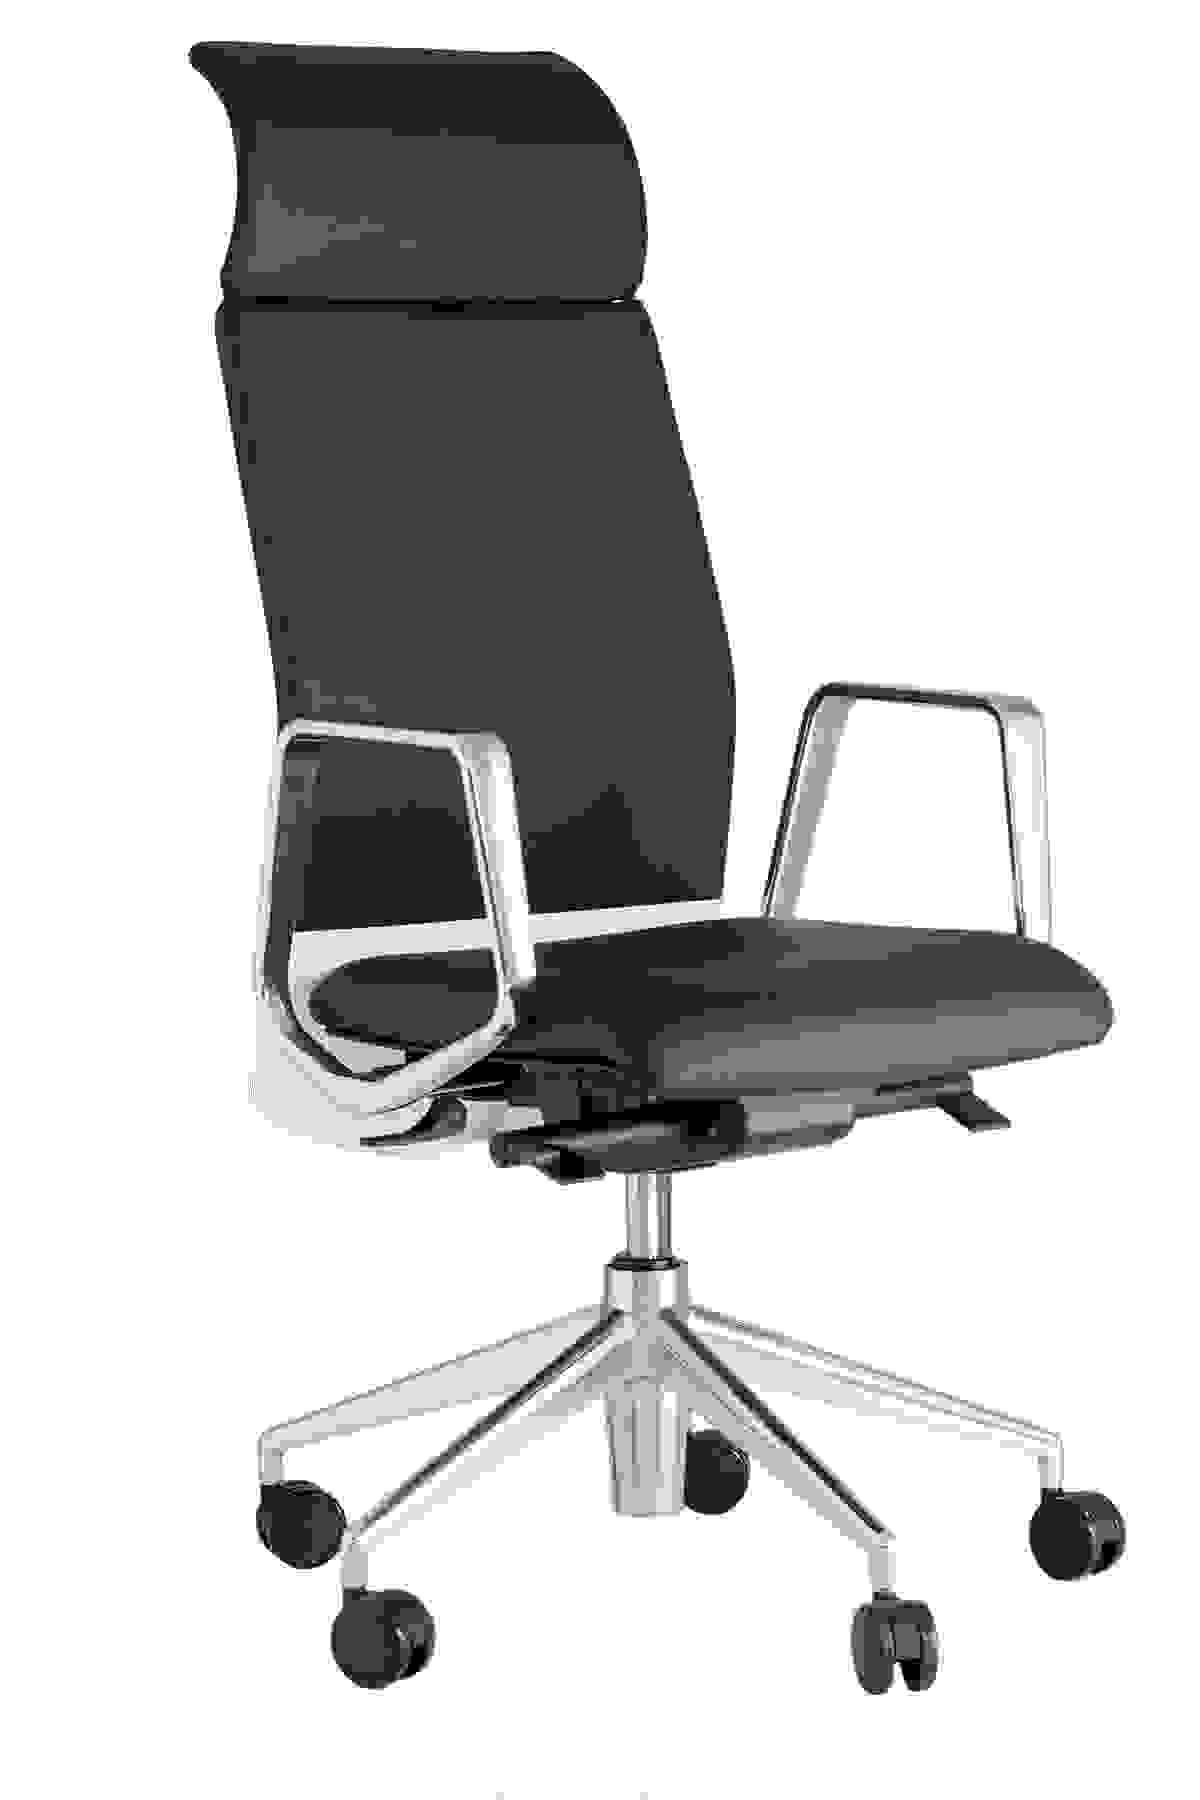 boomerang-office-chair-delaoliva.jpg